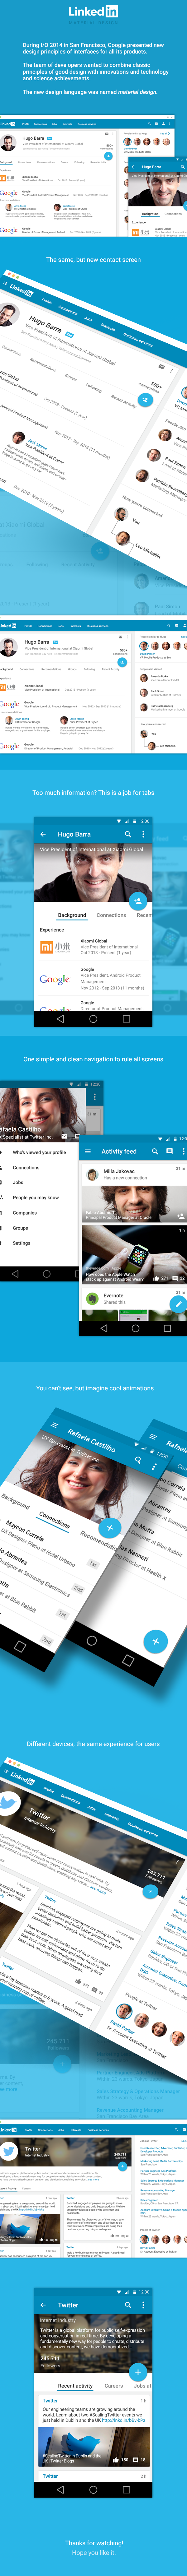 Linkedin material design android l app mobile Web android UI ux google apple watch iphone 6 lollipop android lollipop